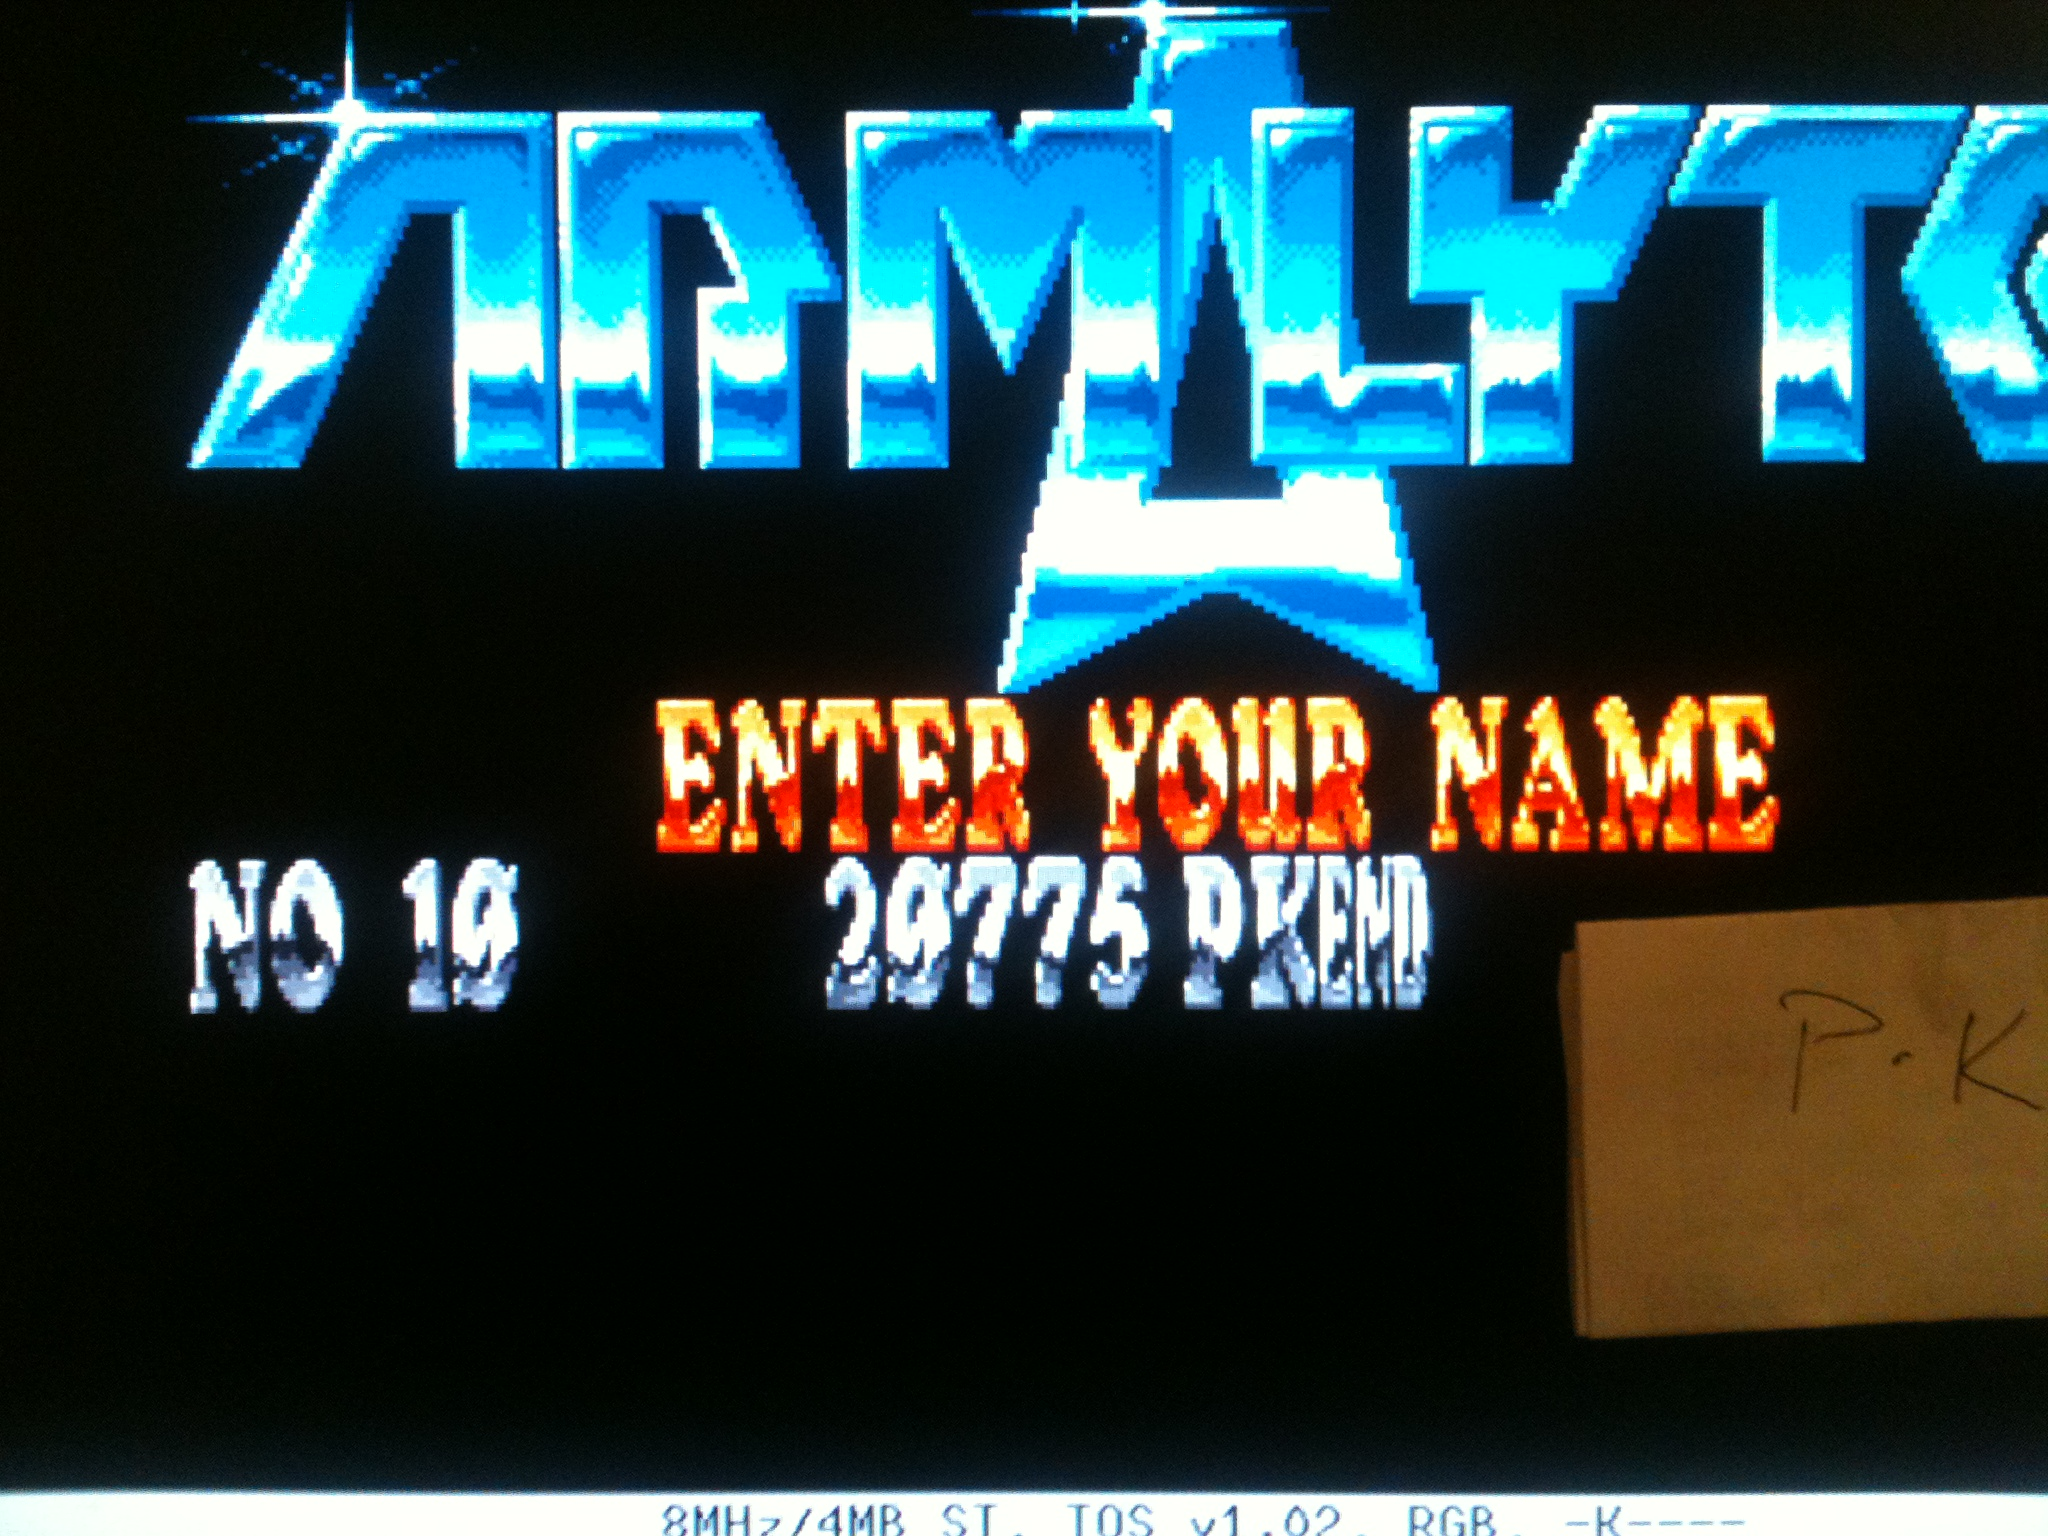 kernzy: Armalyte (Atari ST Emulated) 29,775 points on 2015-02-05 17:56:07